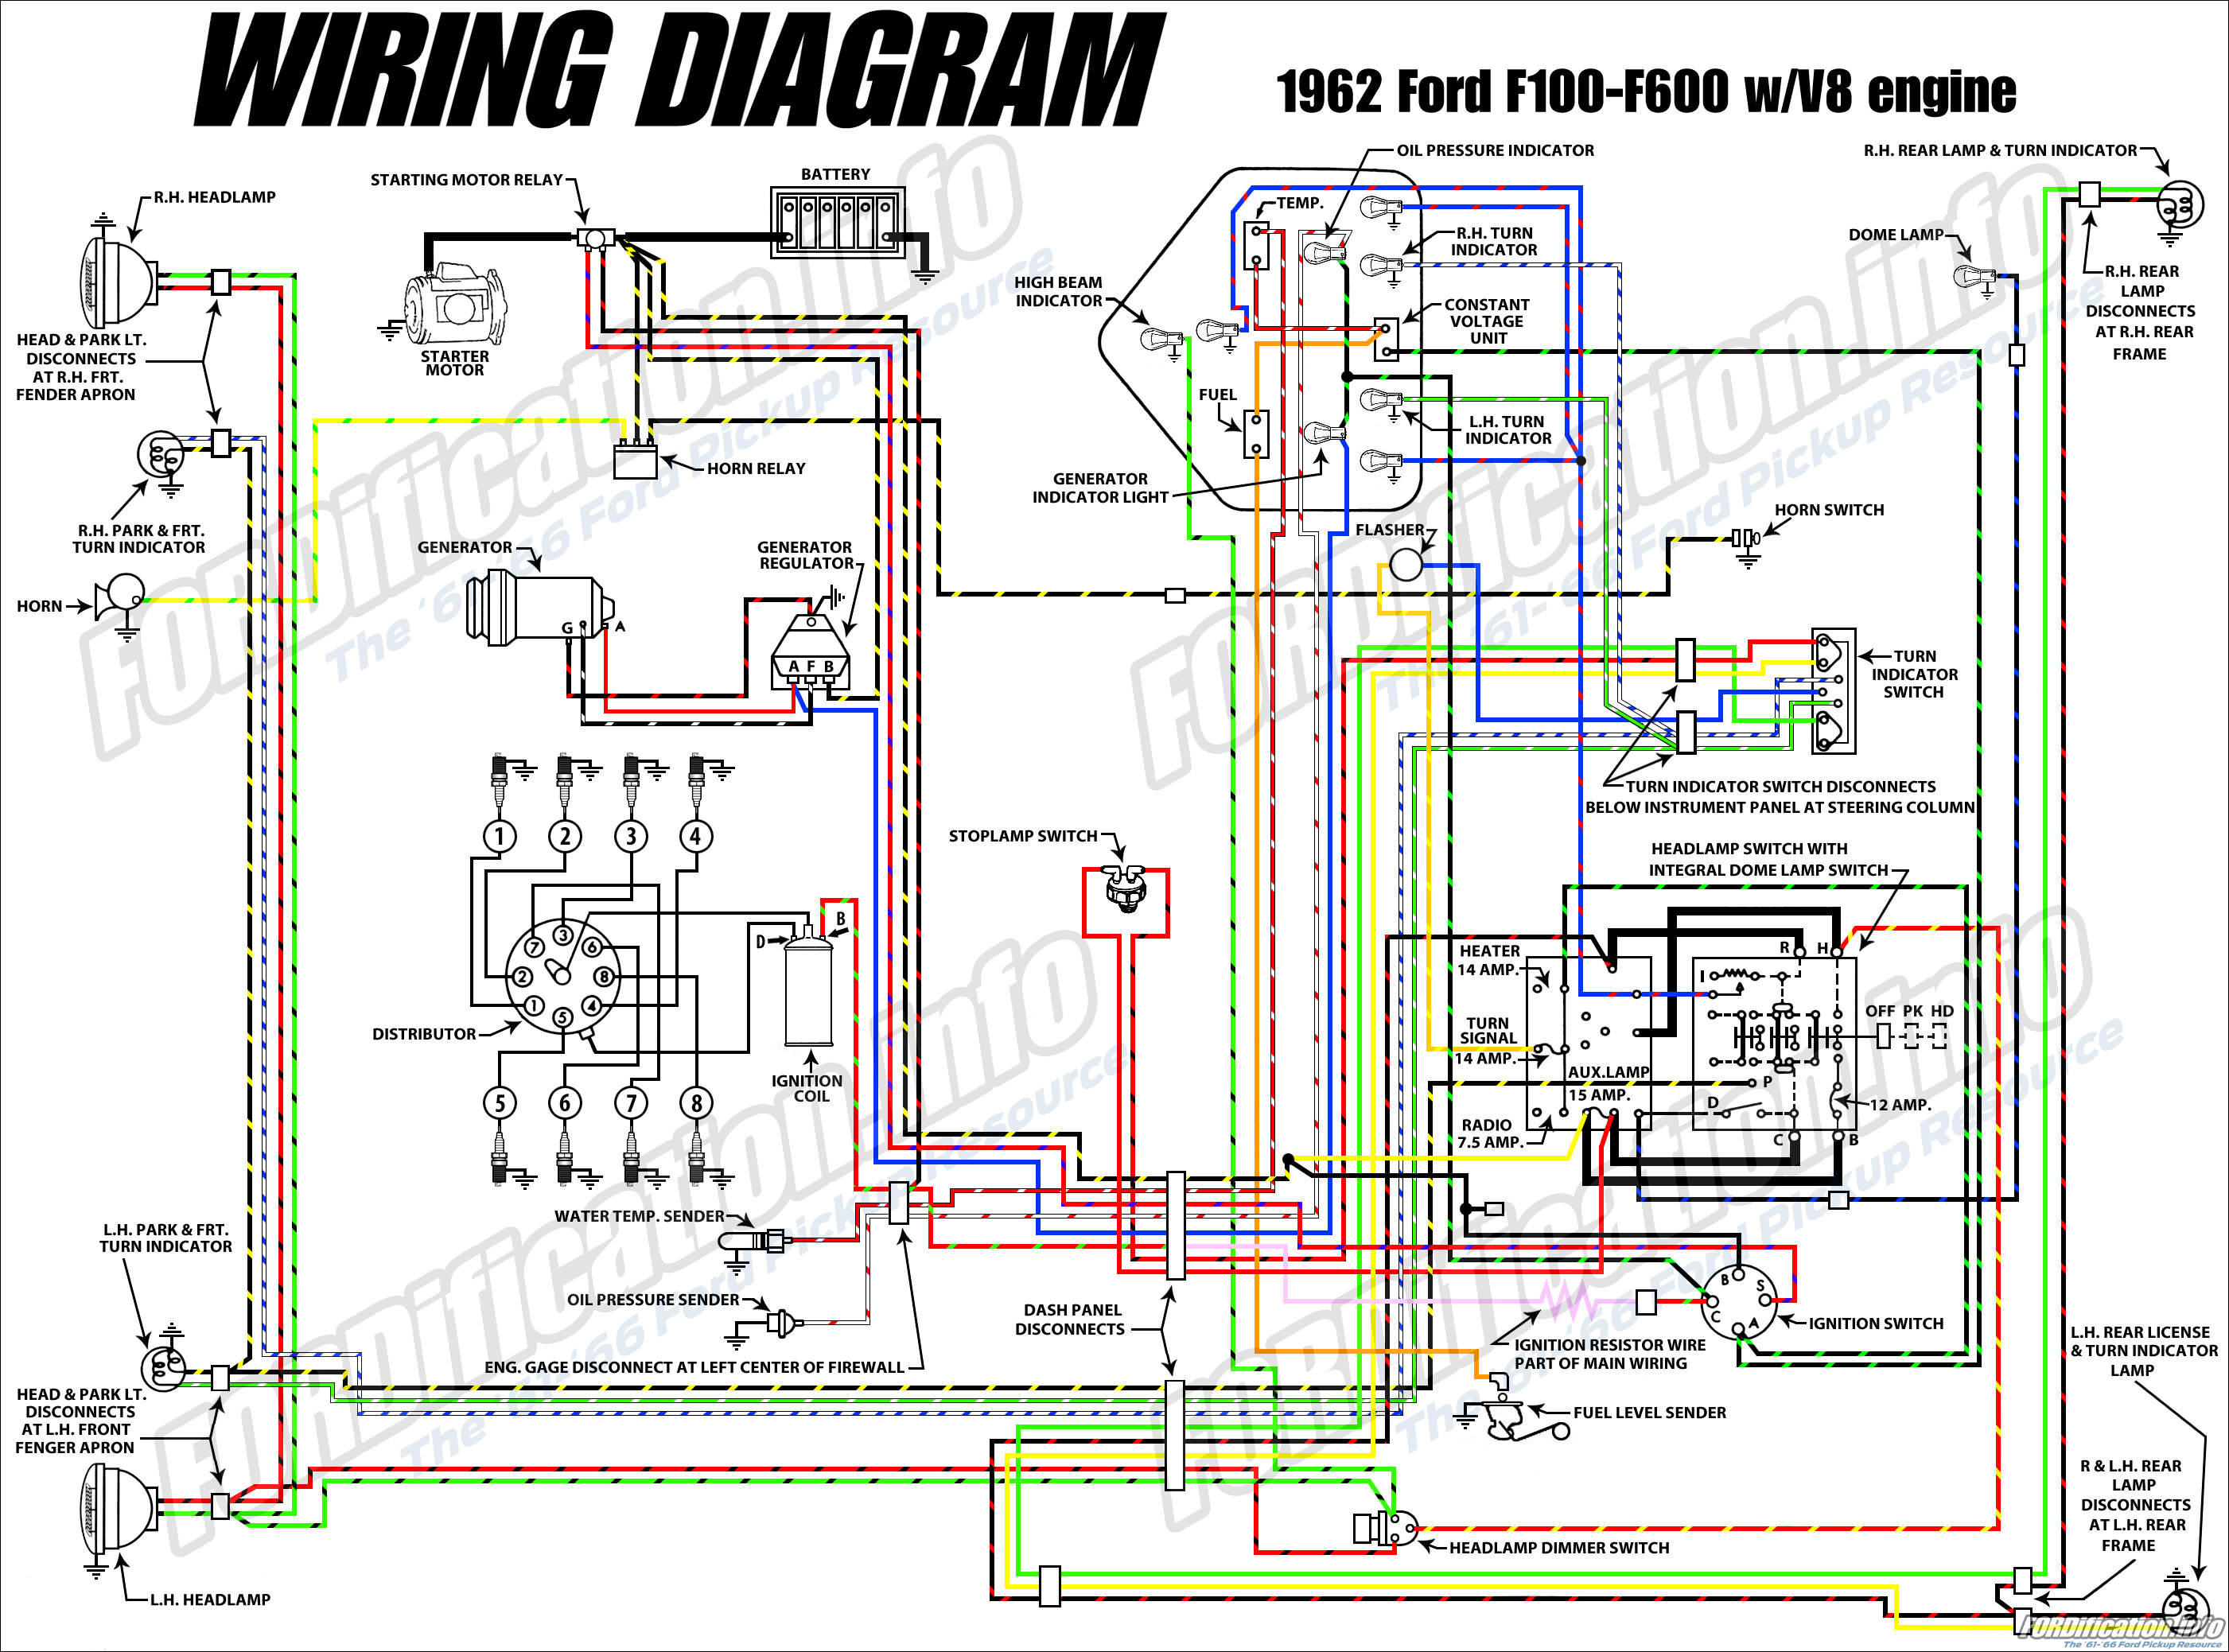 2016 ford f150 wiring diagram manual original wall socket 1962 truck diagrams fordification info the